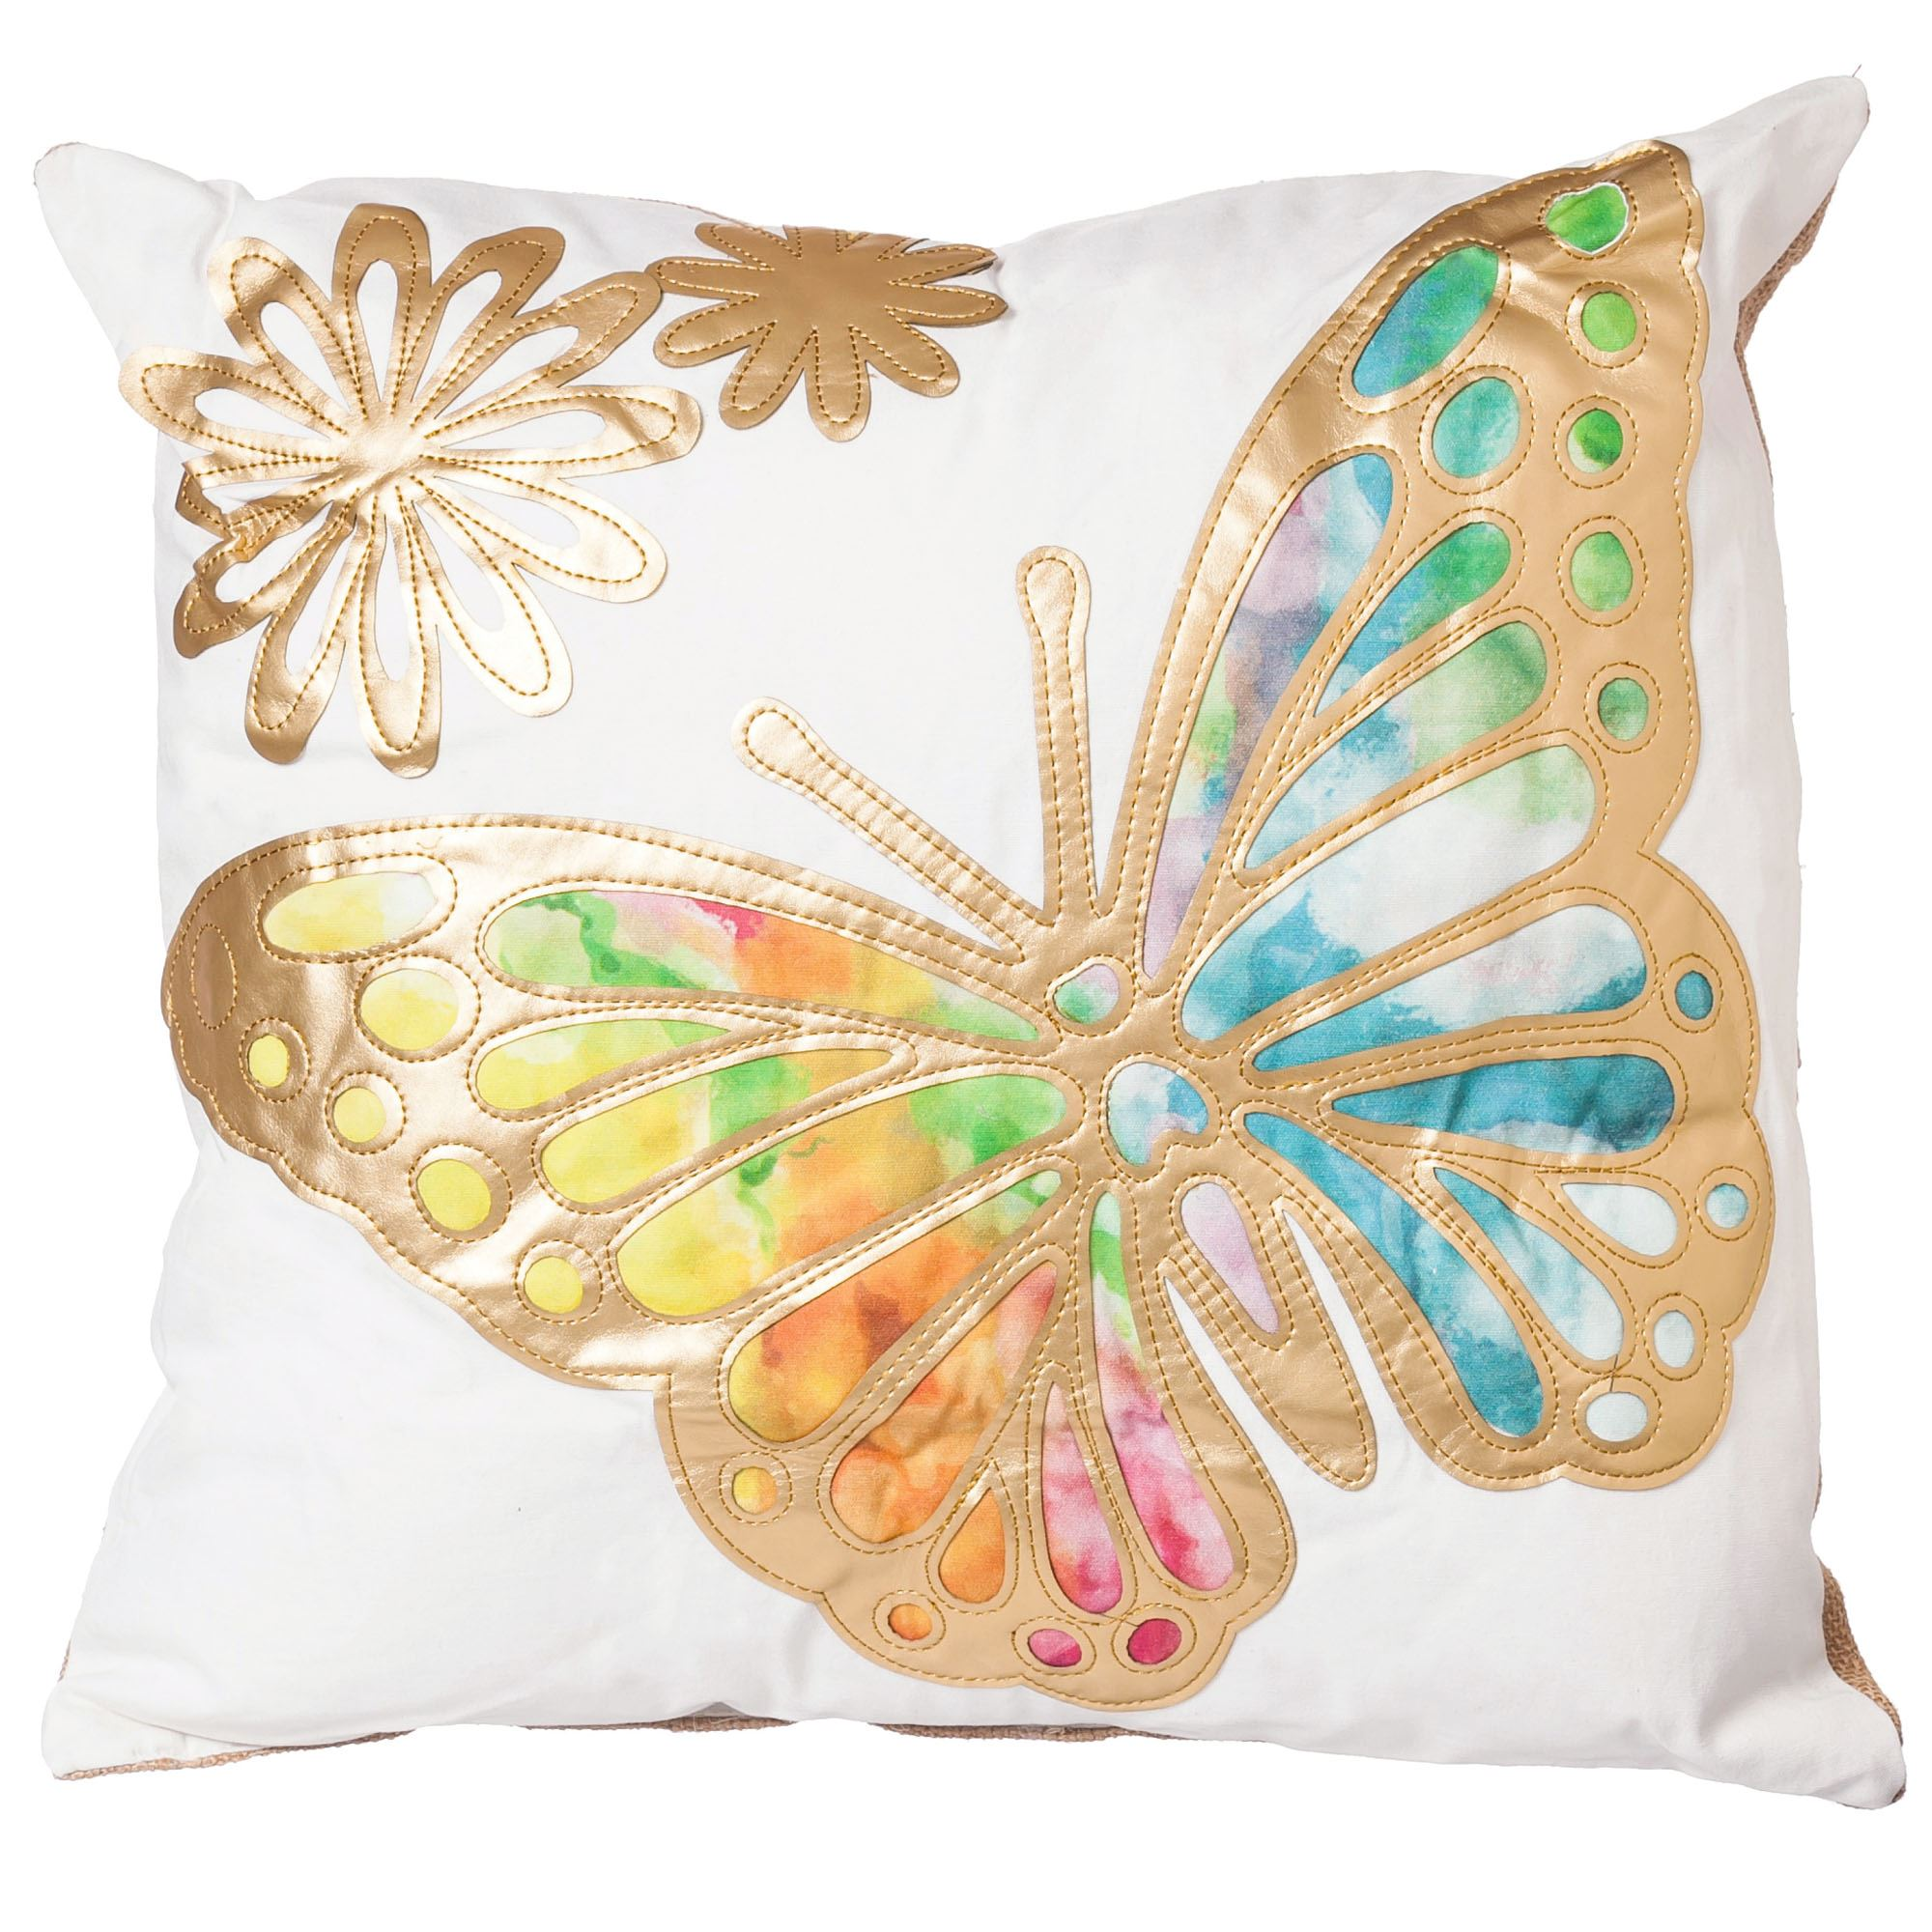 Gold Winged Beauties Dragonfly or Butterfly Indoor Outdoor Pillow